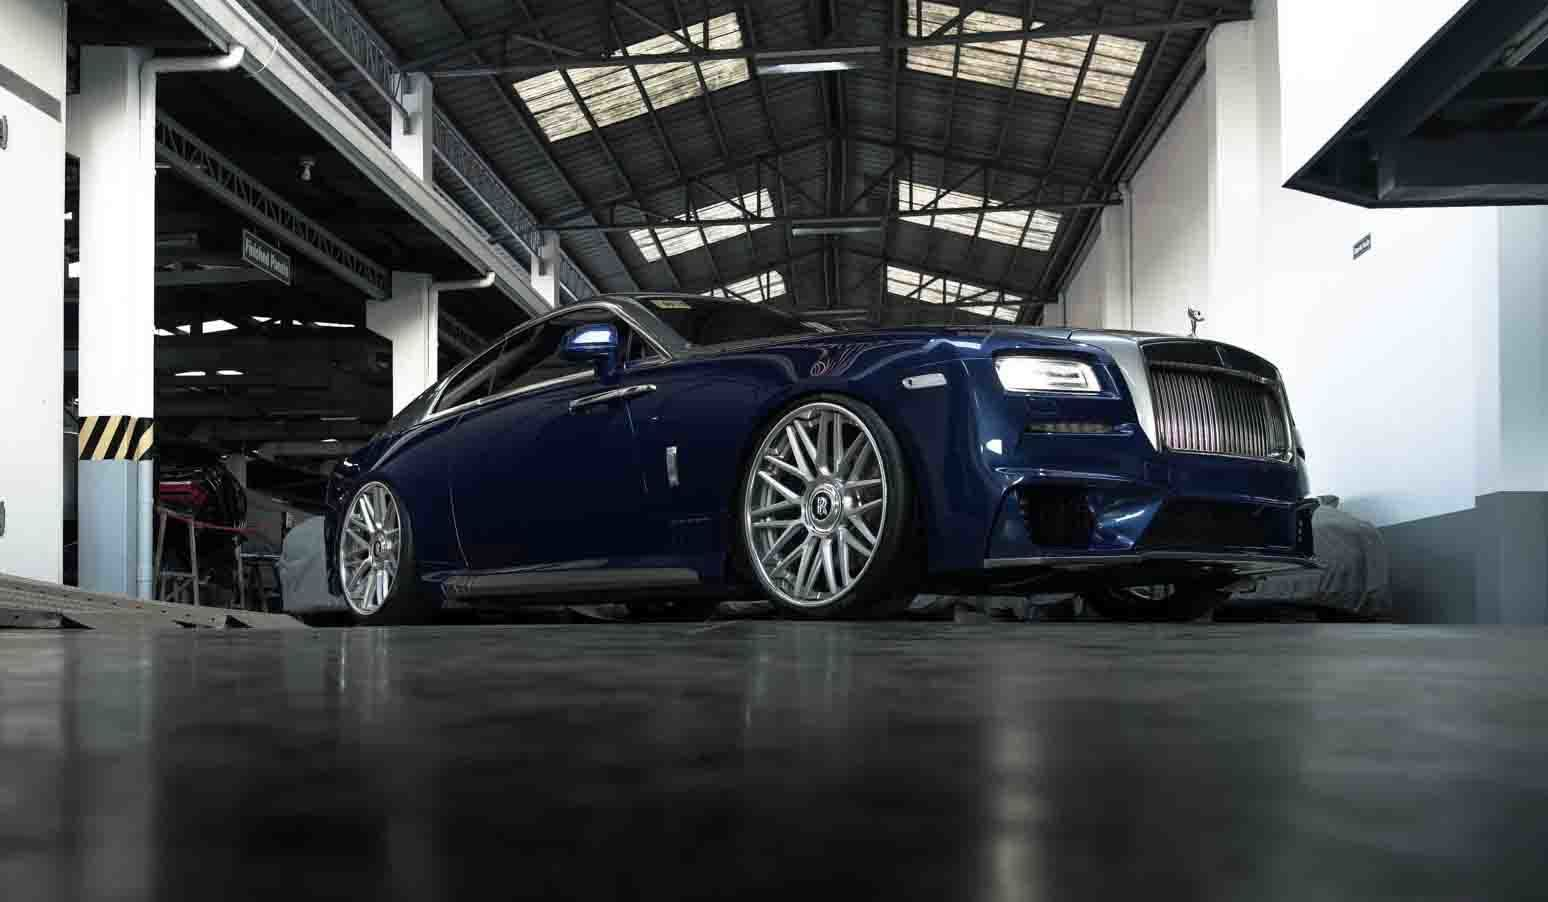 images-products-1-2365-232974653-brixton-forged-rolls-royce-wraith-brixton-forged-cm10-24-inch-brushed-silver-10-1800x1194.jpg